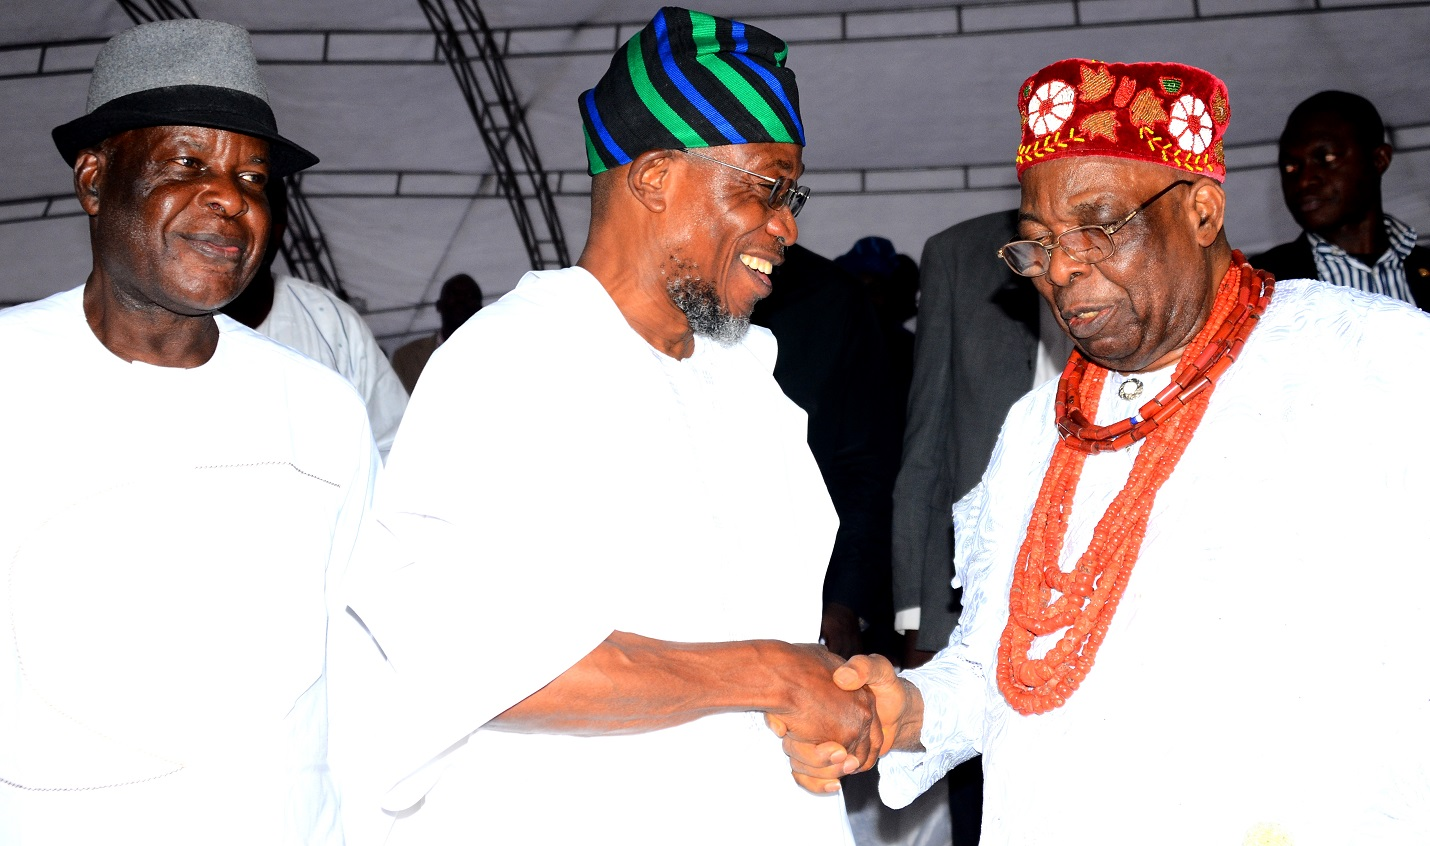 Governor State of Osun, Ogbeni Rauf Aregbesola, exchanging greetings with the  Owa Obokun Adimula of Ijesaland, Oba Gabriel Adekunle Aromolaran. With them is the former Inspector General of Police, Dr. Mike Mbama Okiro, during the 2015 Iwude Ijesa Festival at Owa's Palace on Saturday 26/12/2015.